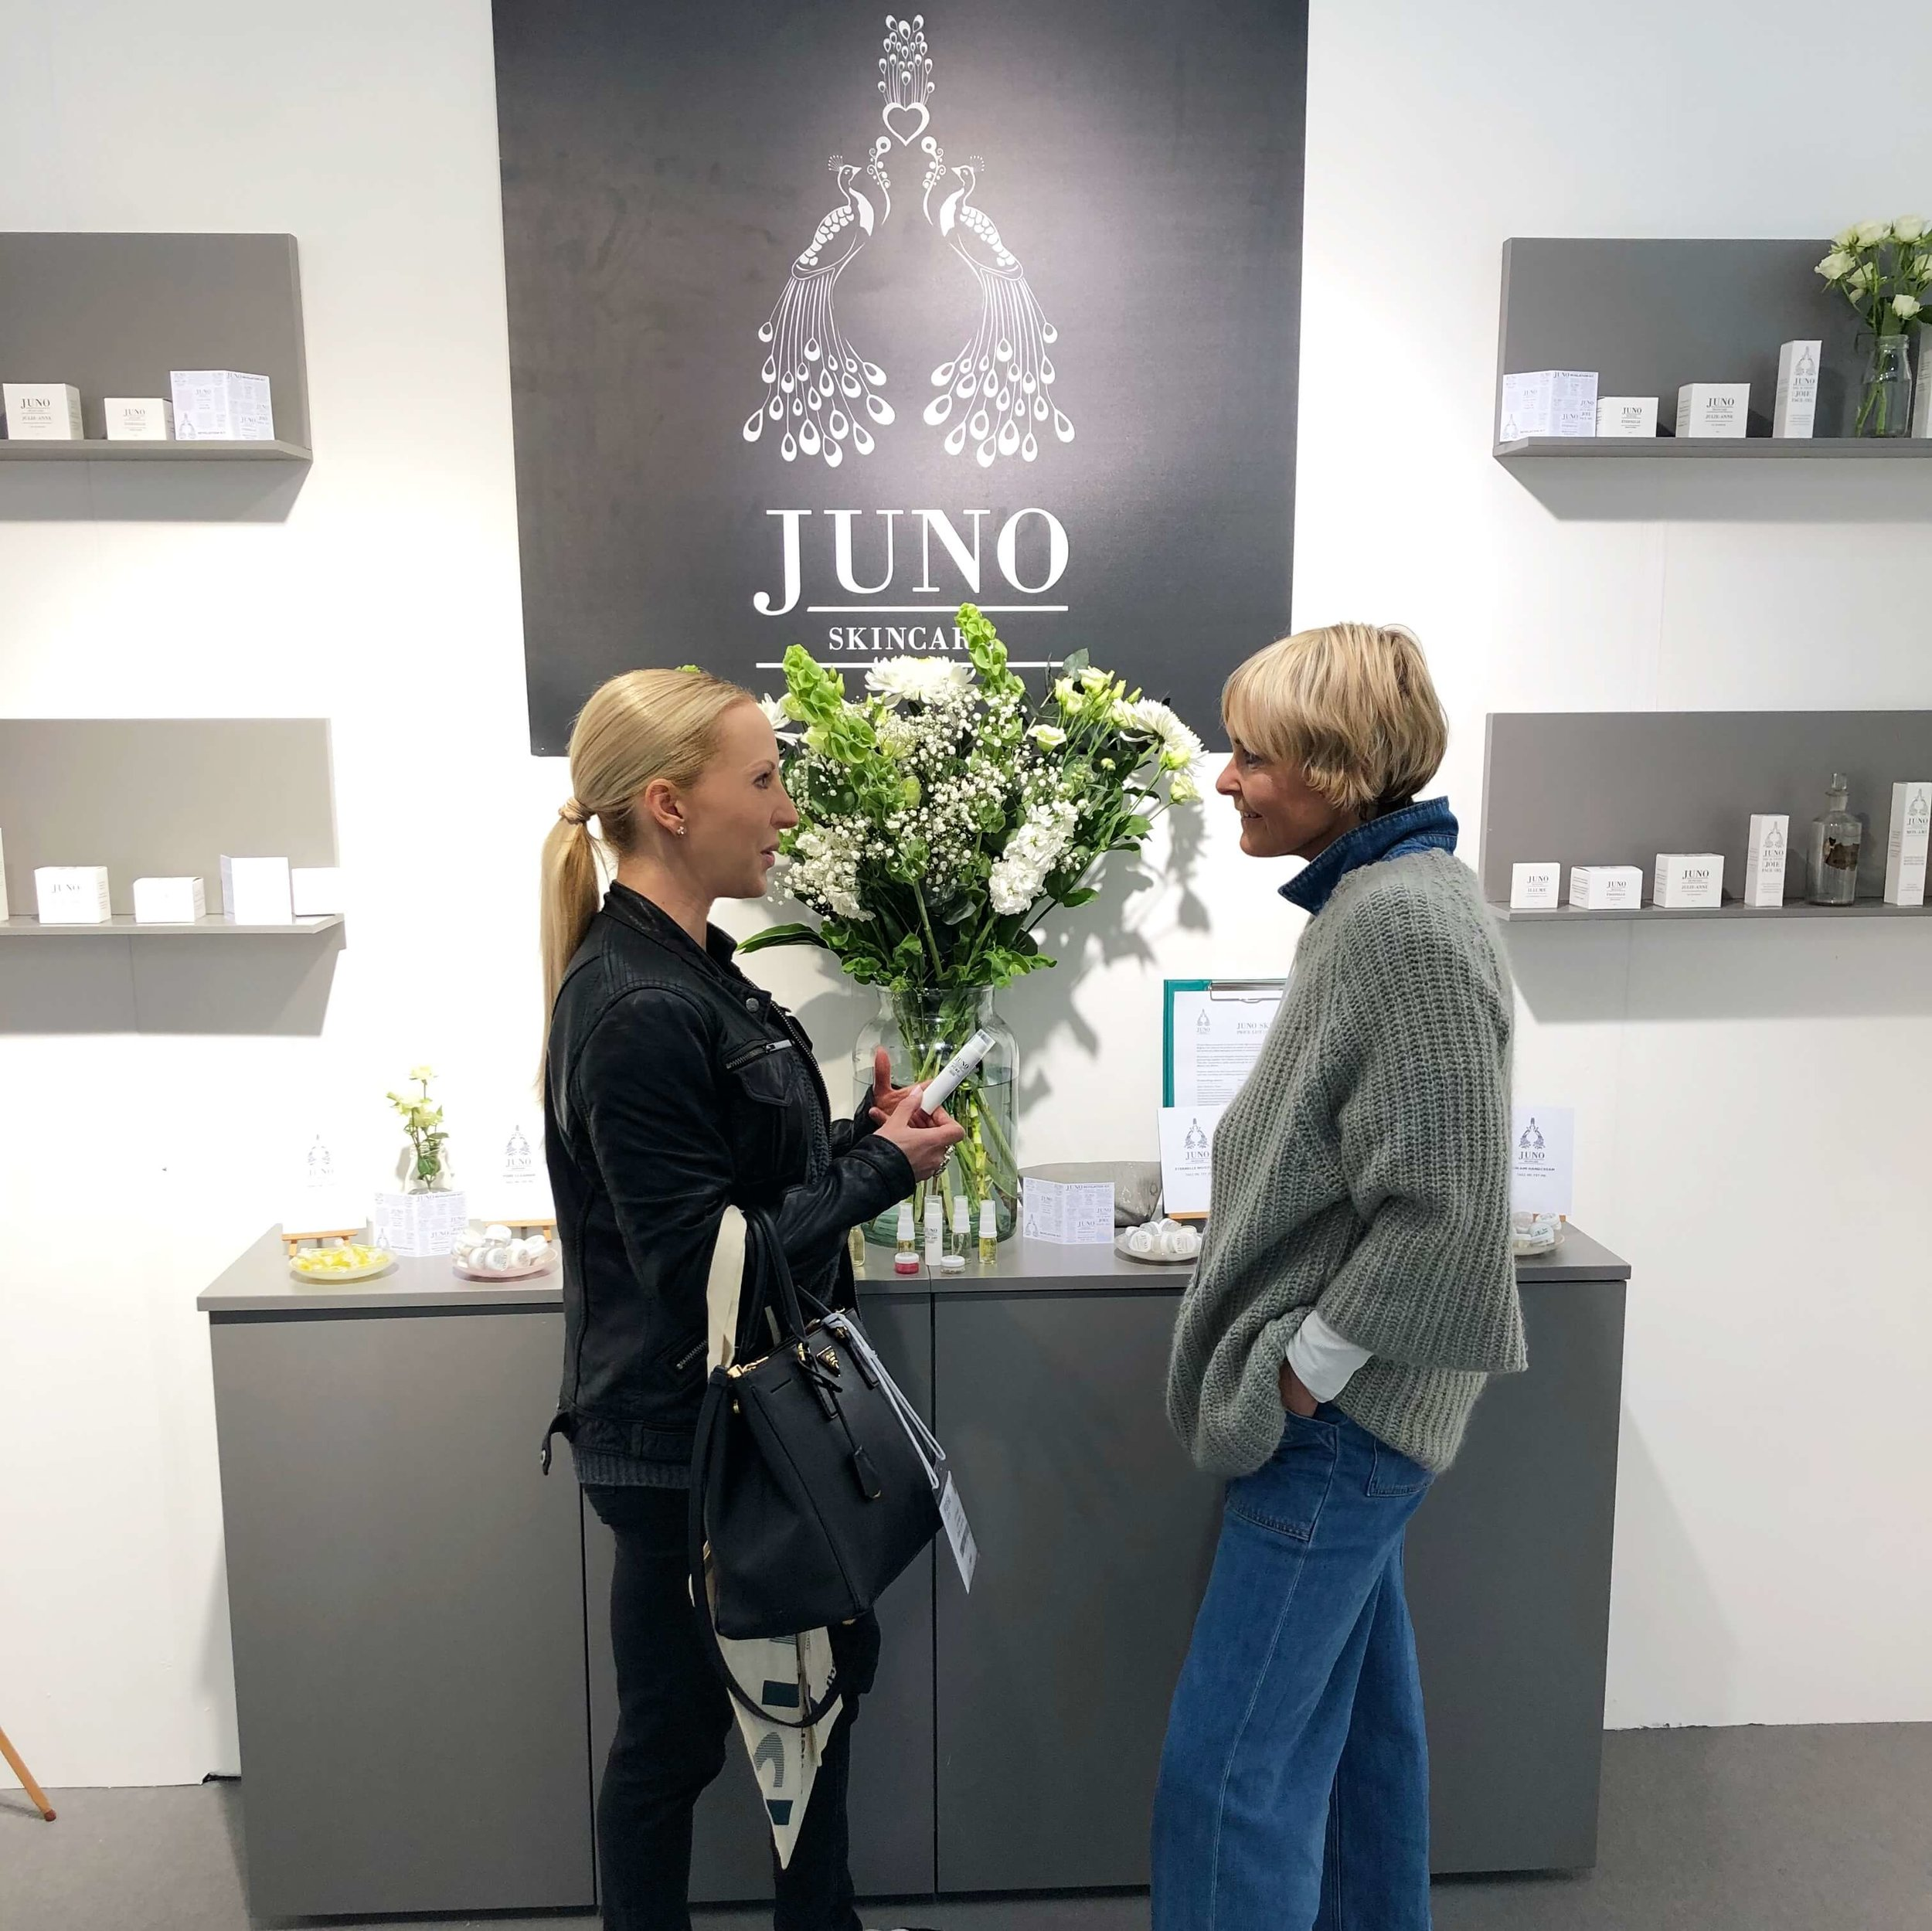 juno-skincare-founder-julie-interview-glamour-and-gains-by-eve